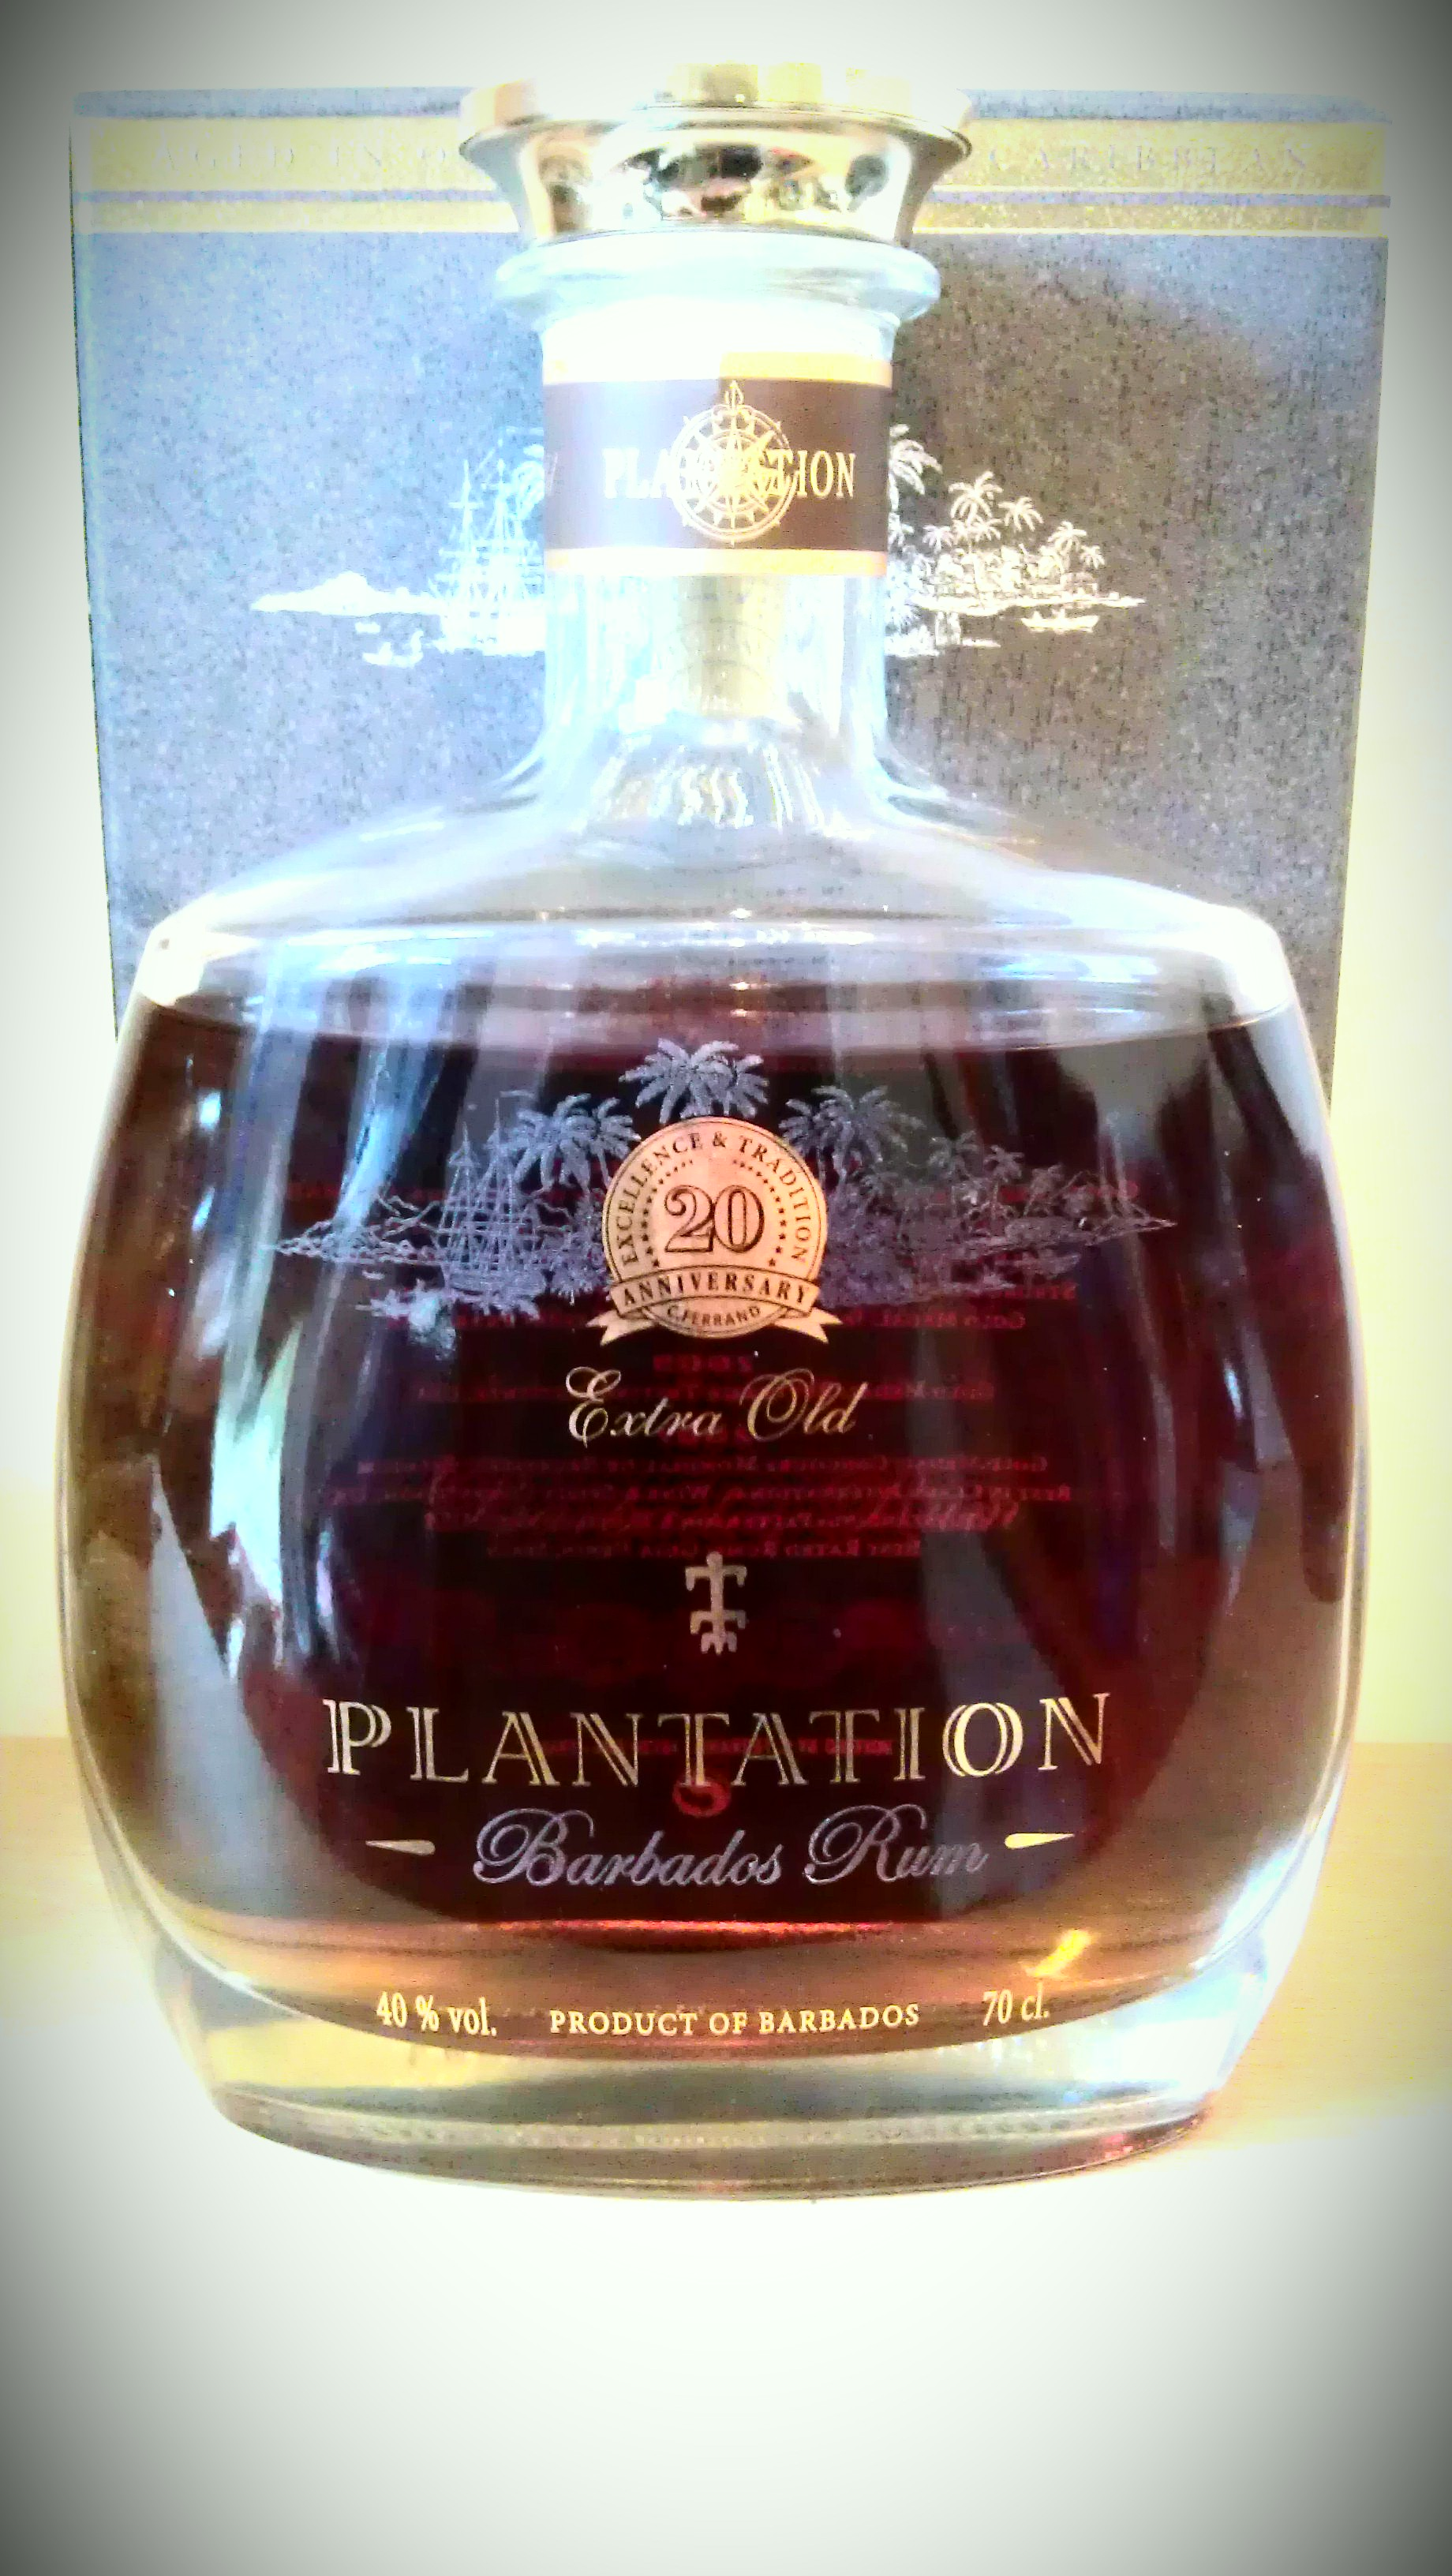 Plantation Barbados Extra Old 20th Anniversary Rum Plantation Extra Old 20th Anniversary Barbados Rum Rum